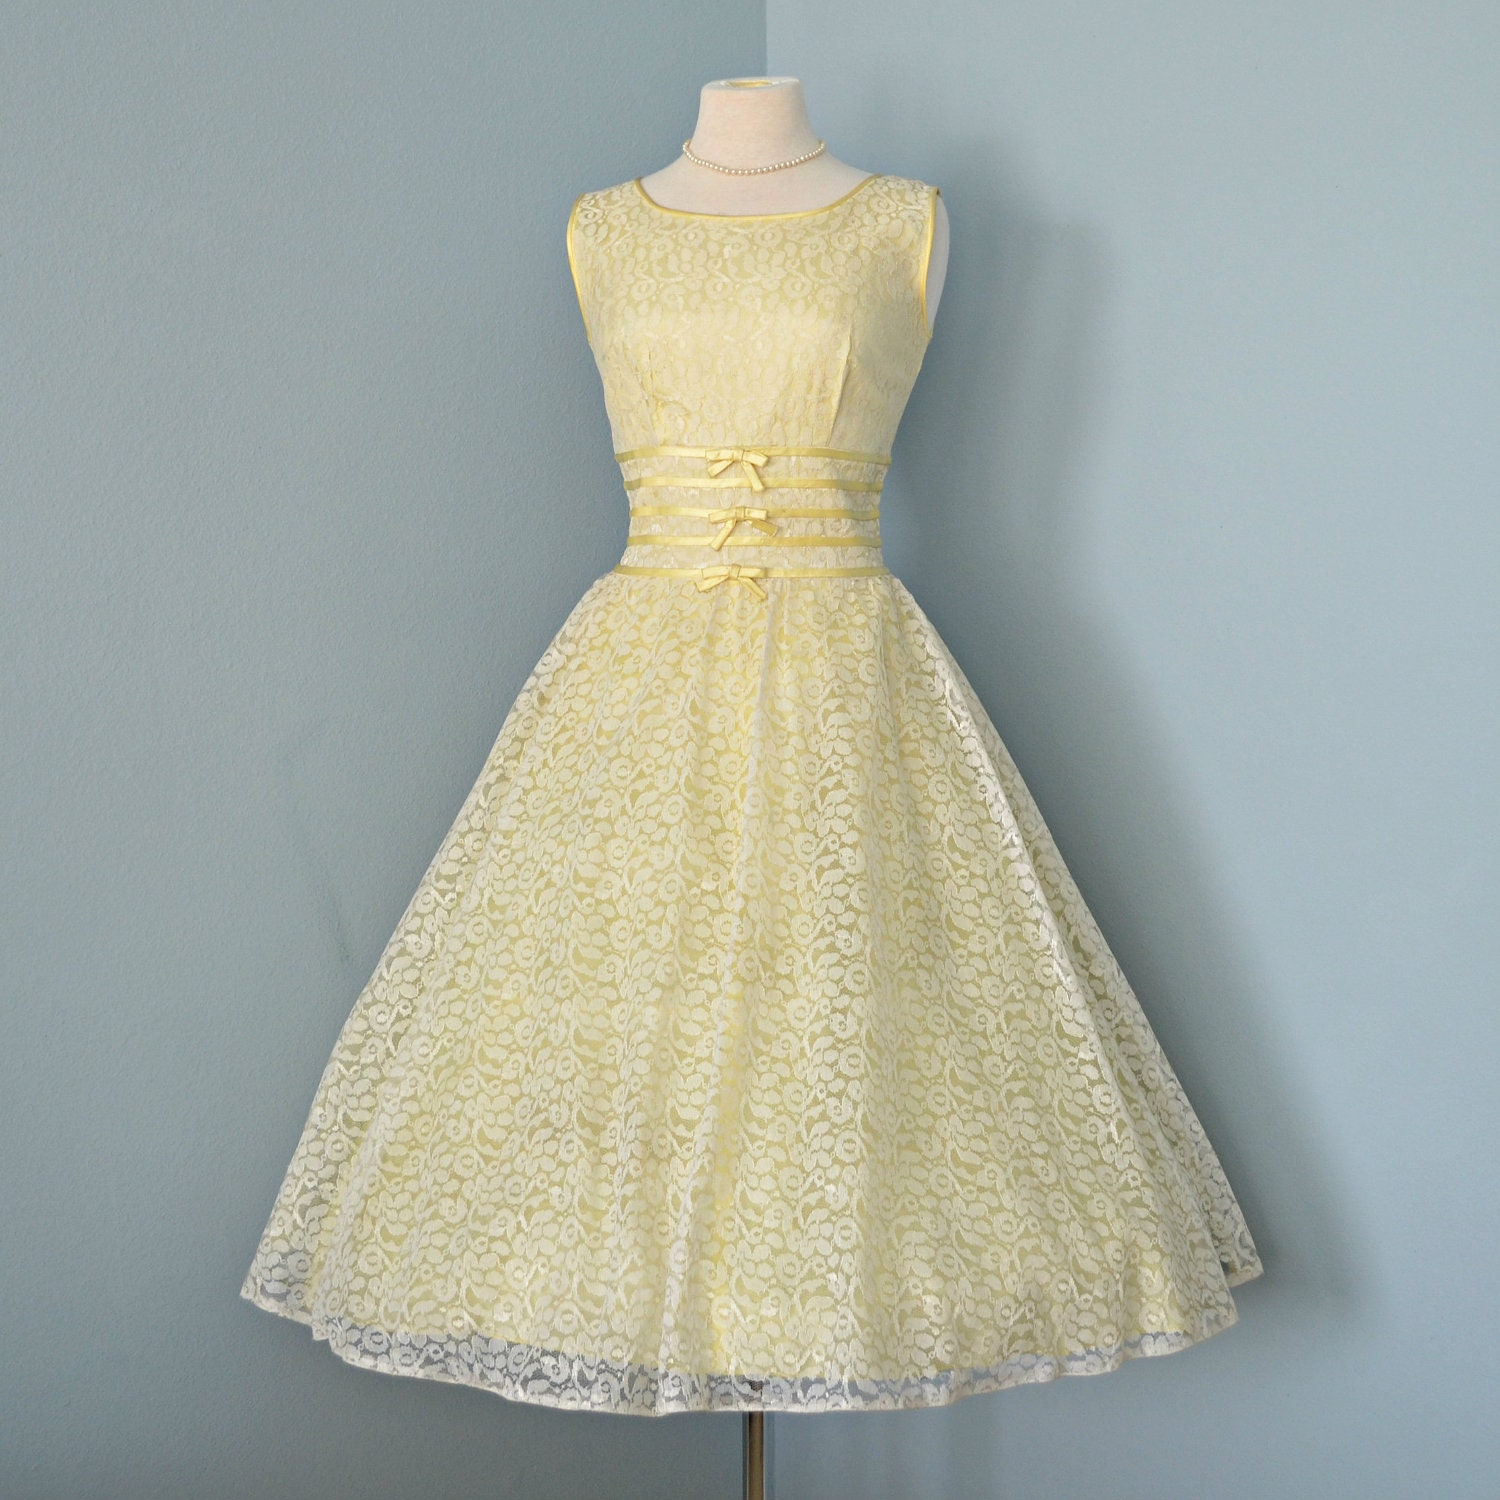 Vintage 1950's Wedding Dress...Beautiful Pale Yellow Lace